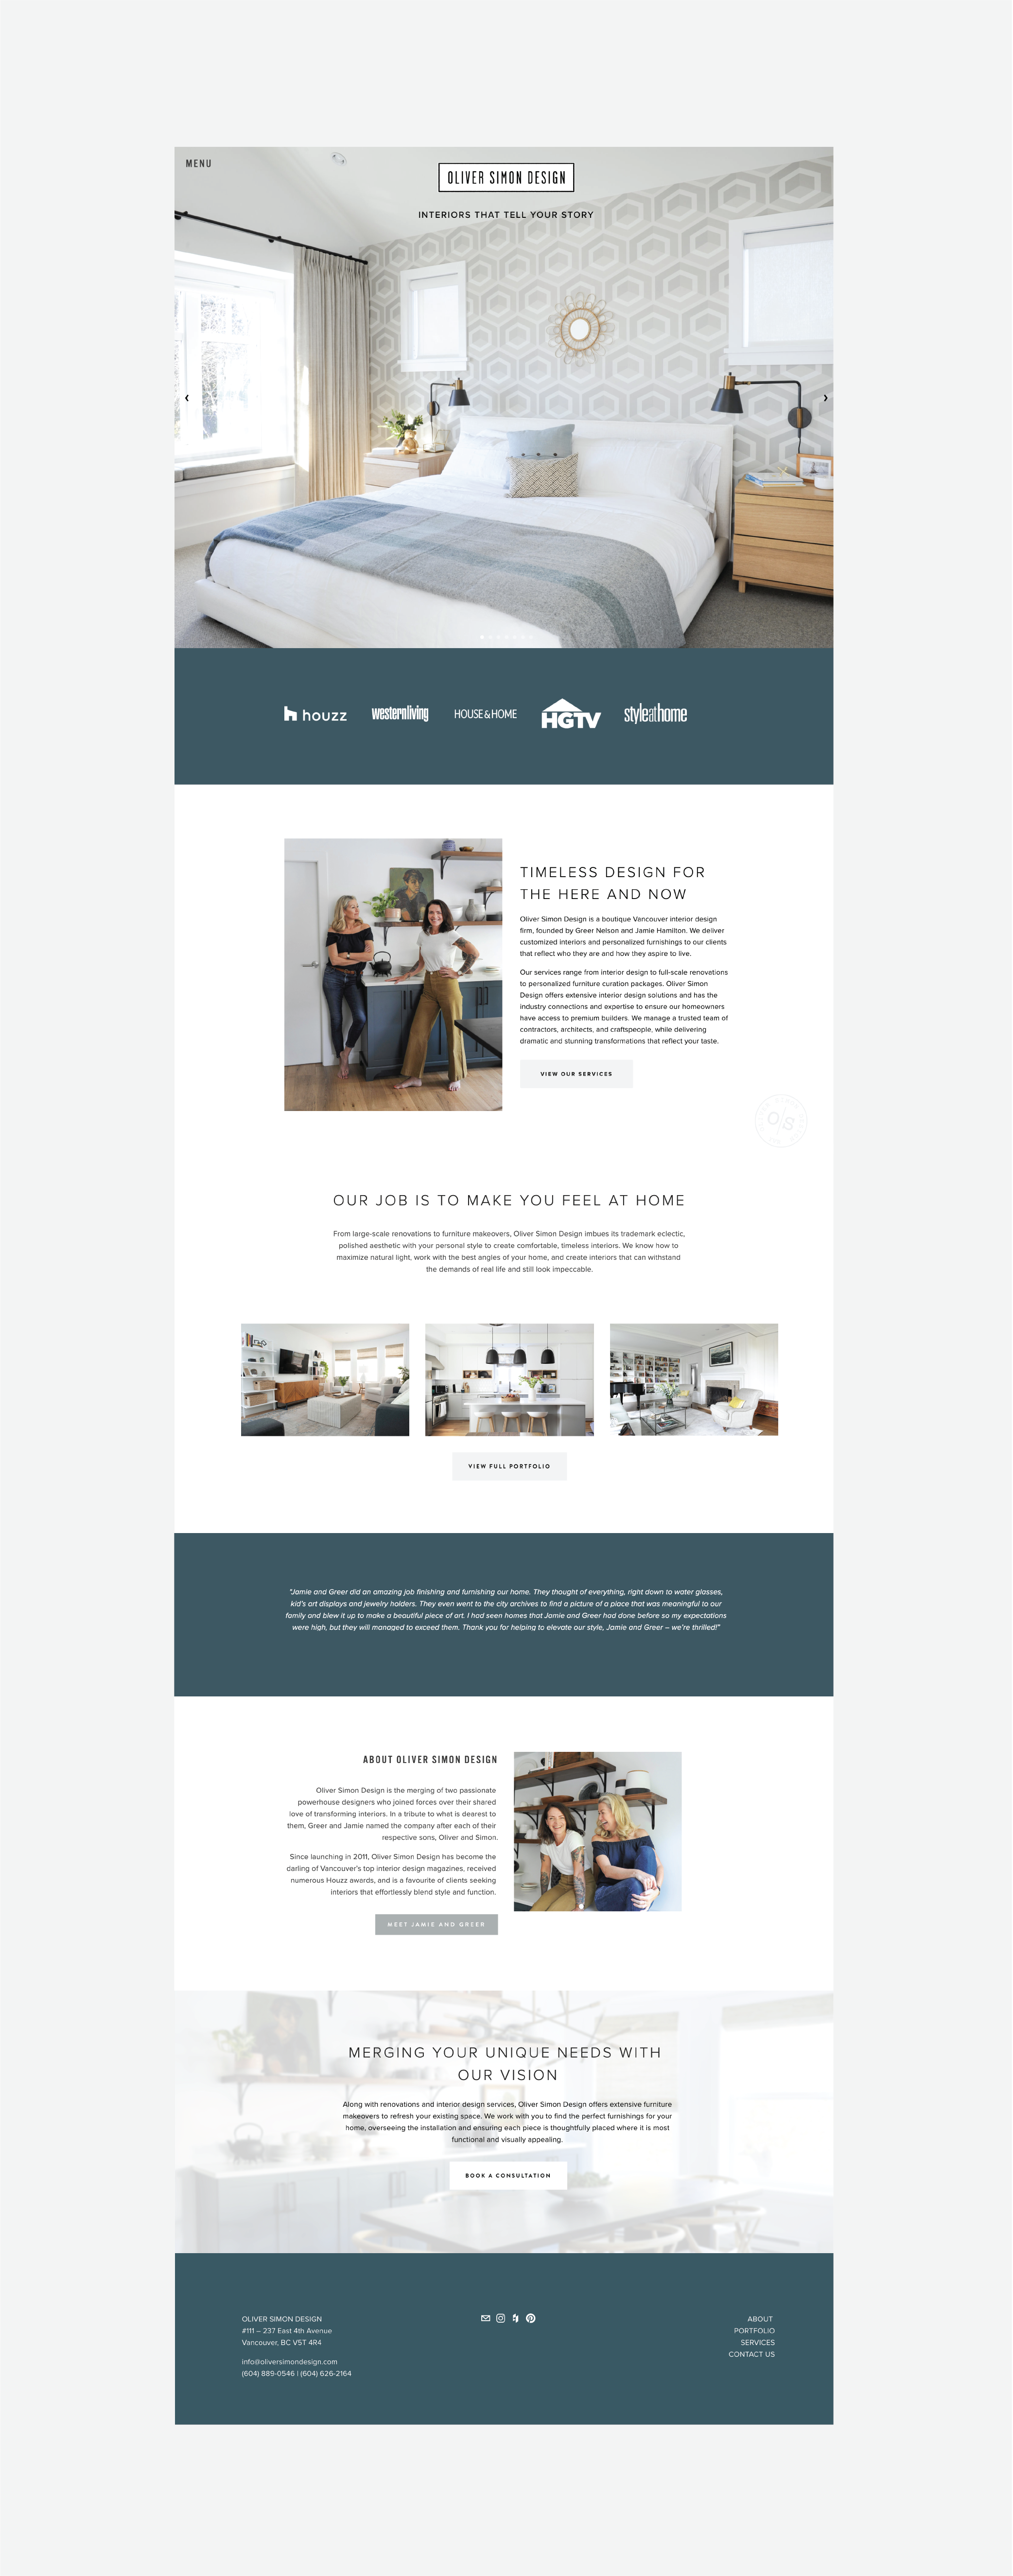 Image shows the full homepage of Oliver Simon Design's homepage - with lots of large photos of interiors designed by them and photos of designers Jamie and Greer